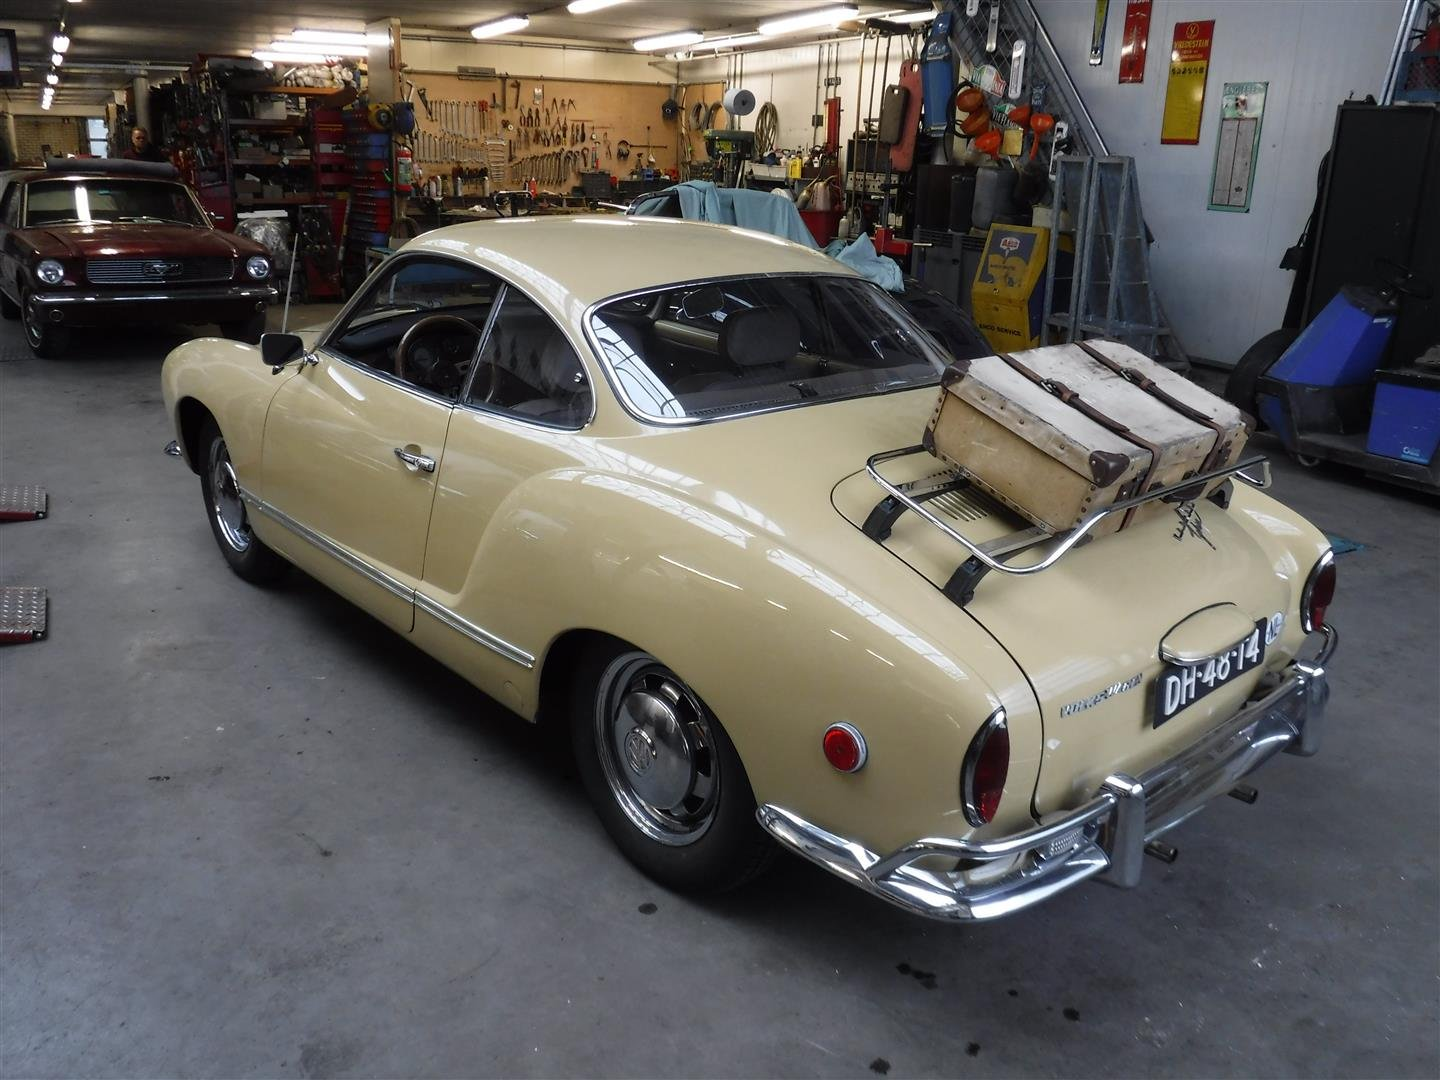 1969 VW Karmann Ghia coupé '69 For Sale (picture 2 of 6)